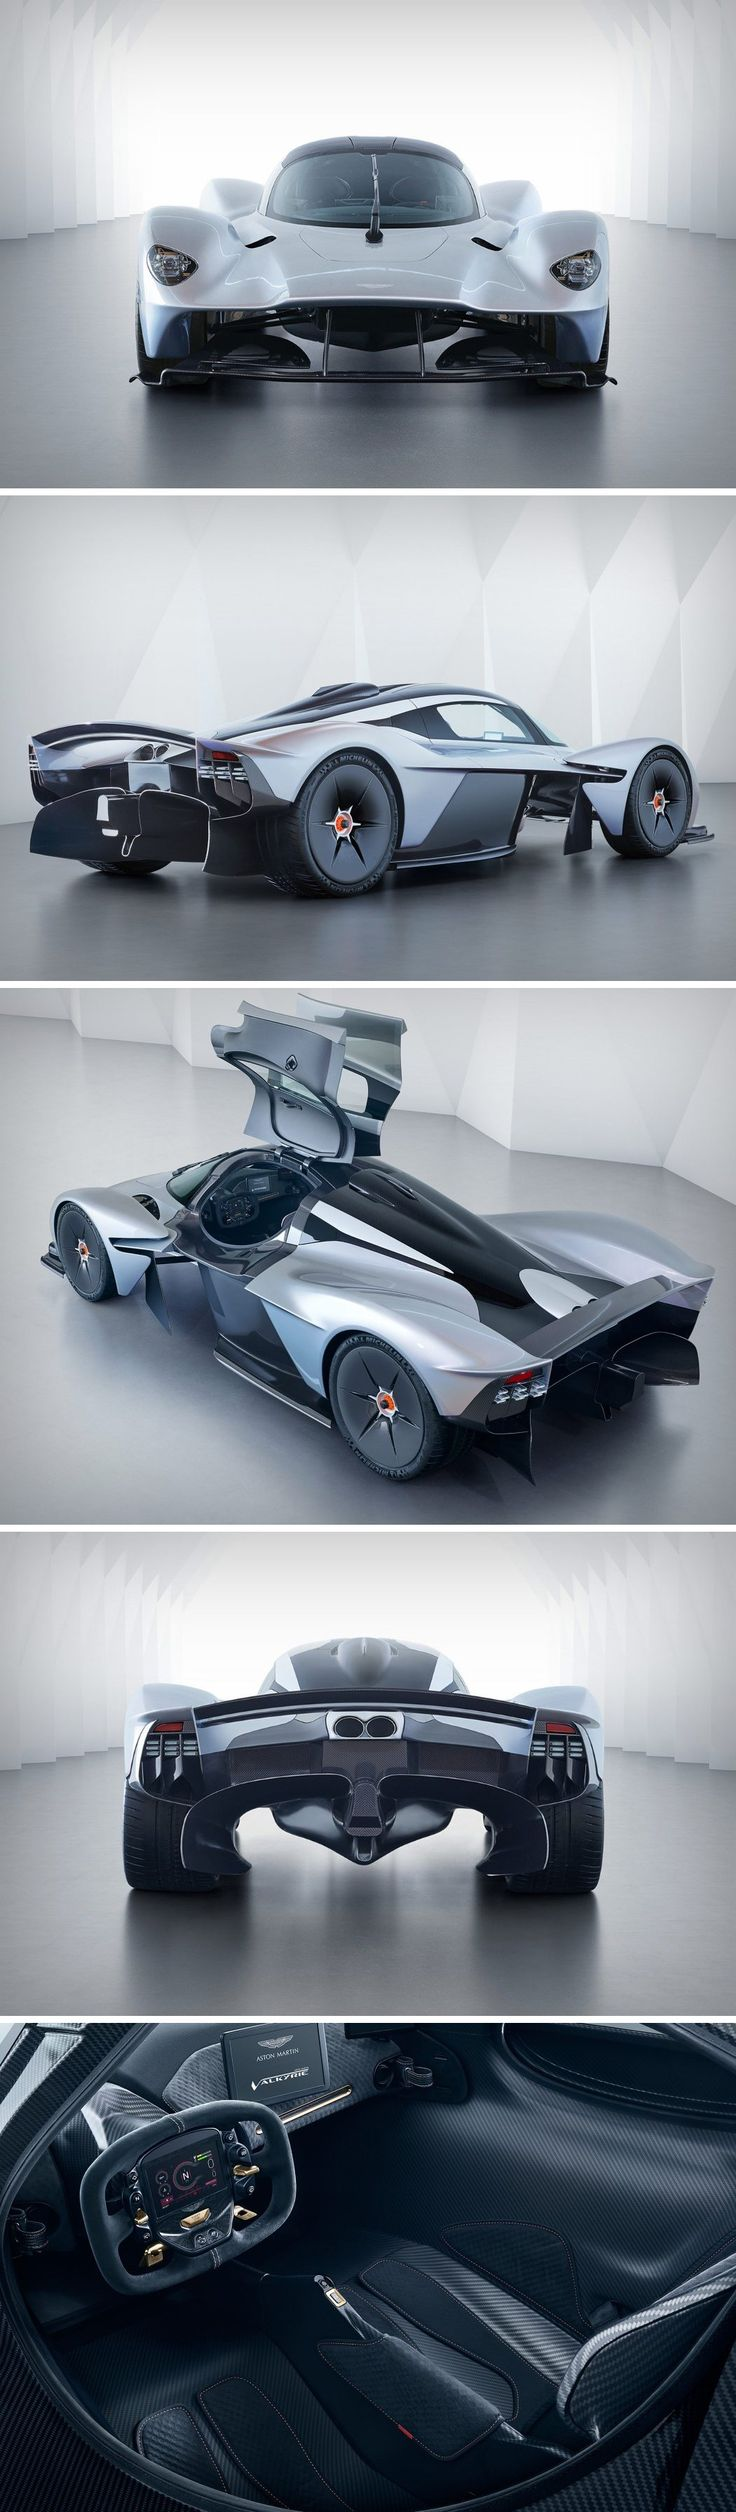 What do you call a car with 1130 horsepower? A Formula 1 car? Nope, you call it the Aston Martin Valkyrie. This monster of an automobile boasts of more hp than most F1 cars, courtesy a V12 engine… backed by a price tag of $3.2 million.